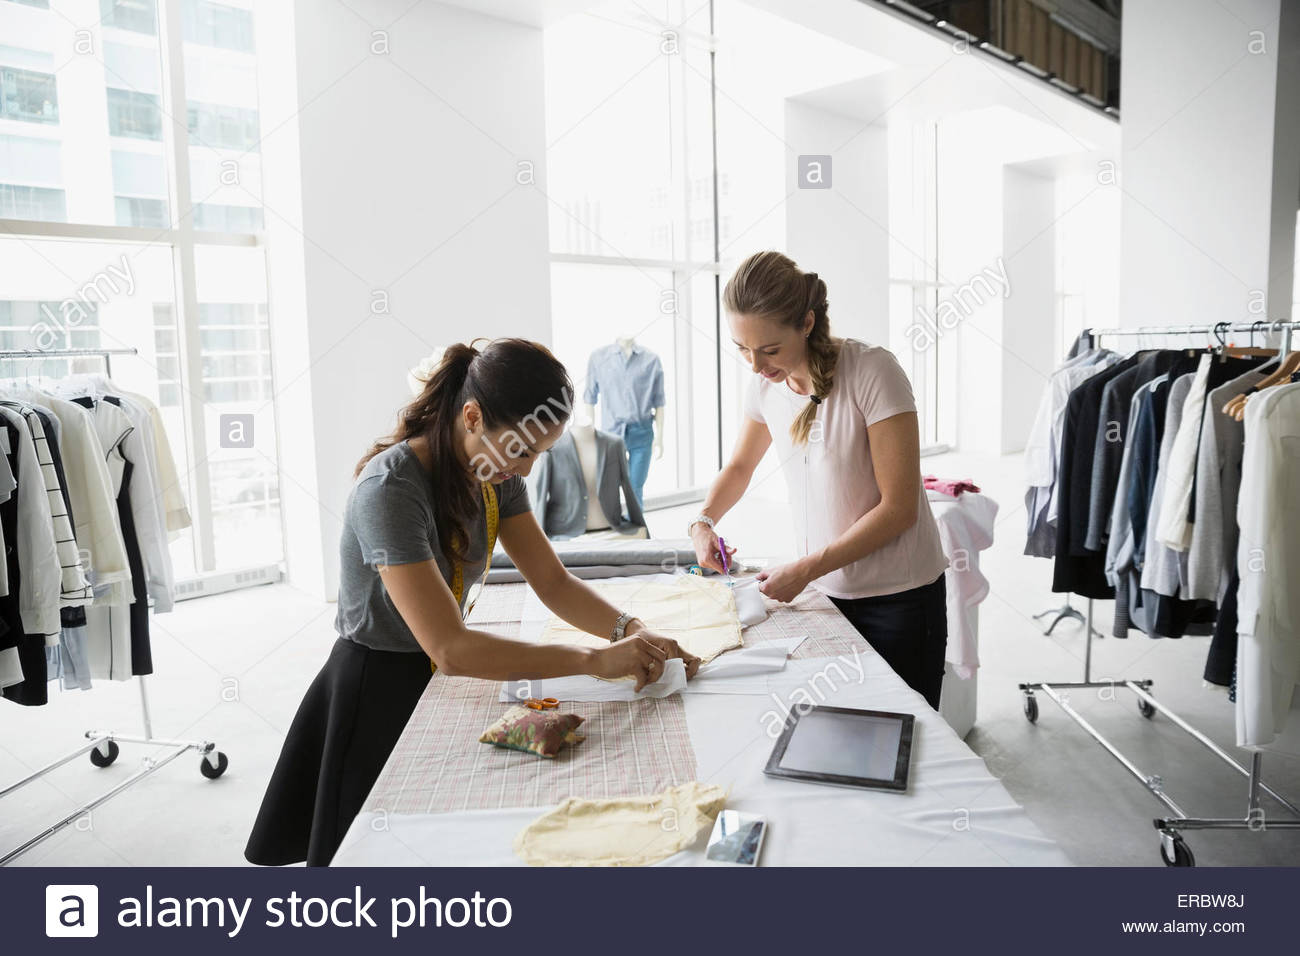 Fashion designers working with fabric and sewing patterns - Stock Image